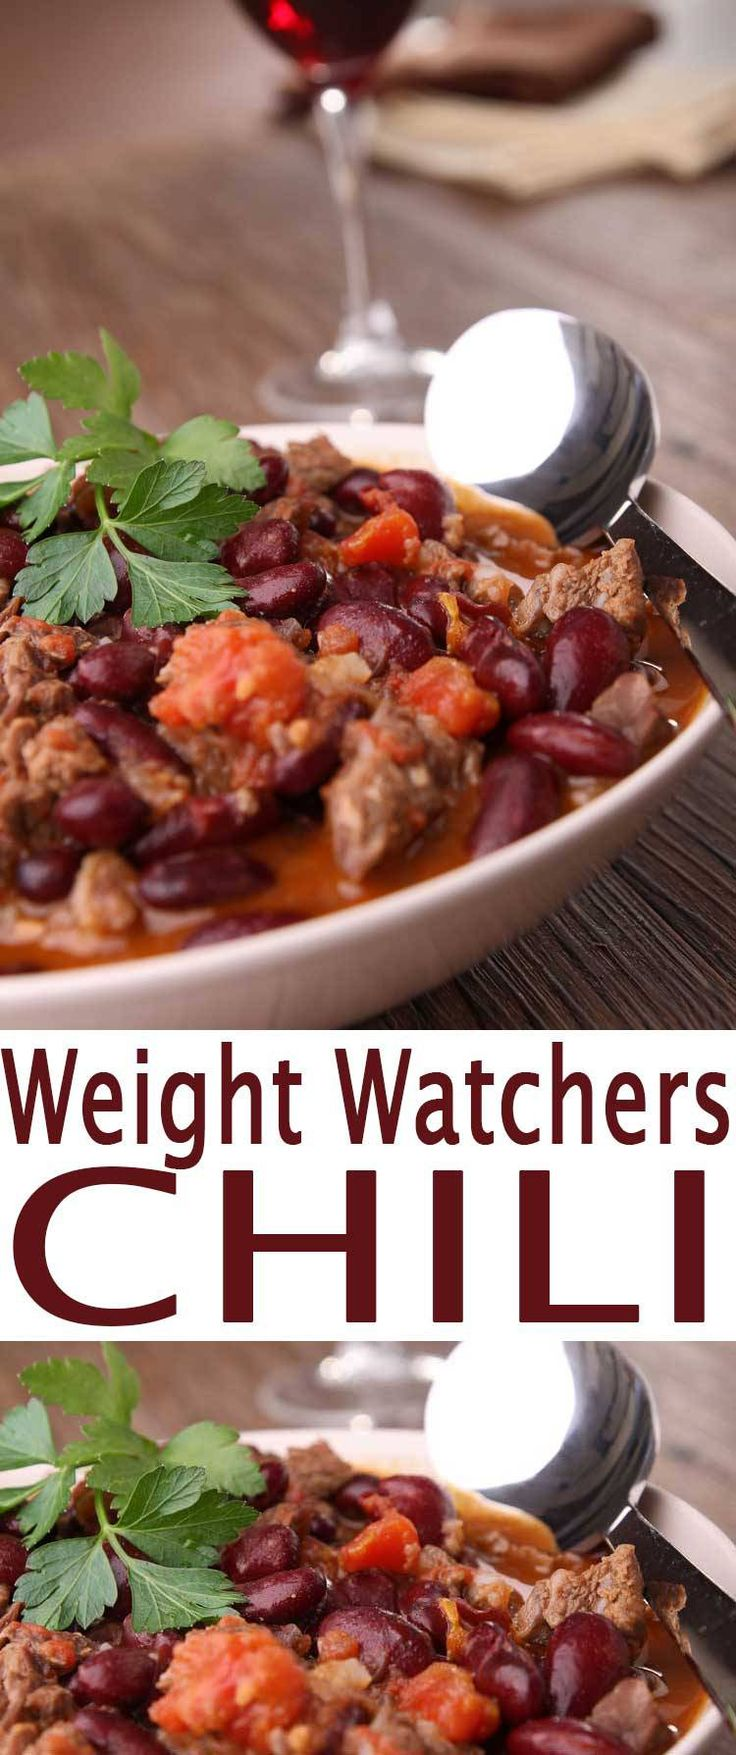 Weight Watchers Chili Recipe is a healthy chili recipe that is an easy dinner recipe and a nice slow cooker meal. Put this in the crock pot for an easy dinner solution. Best chili recipe.